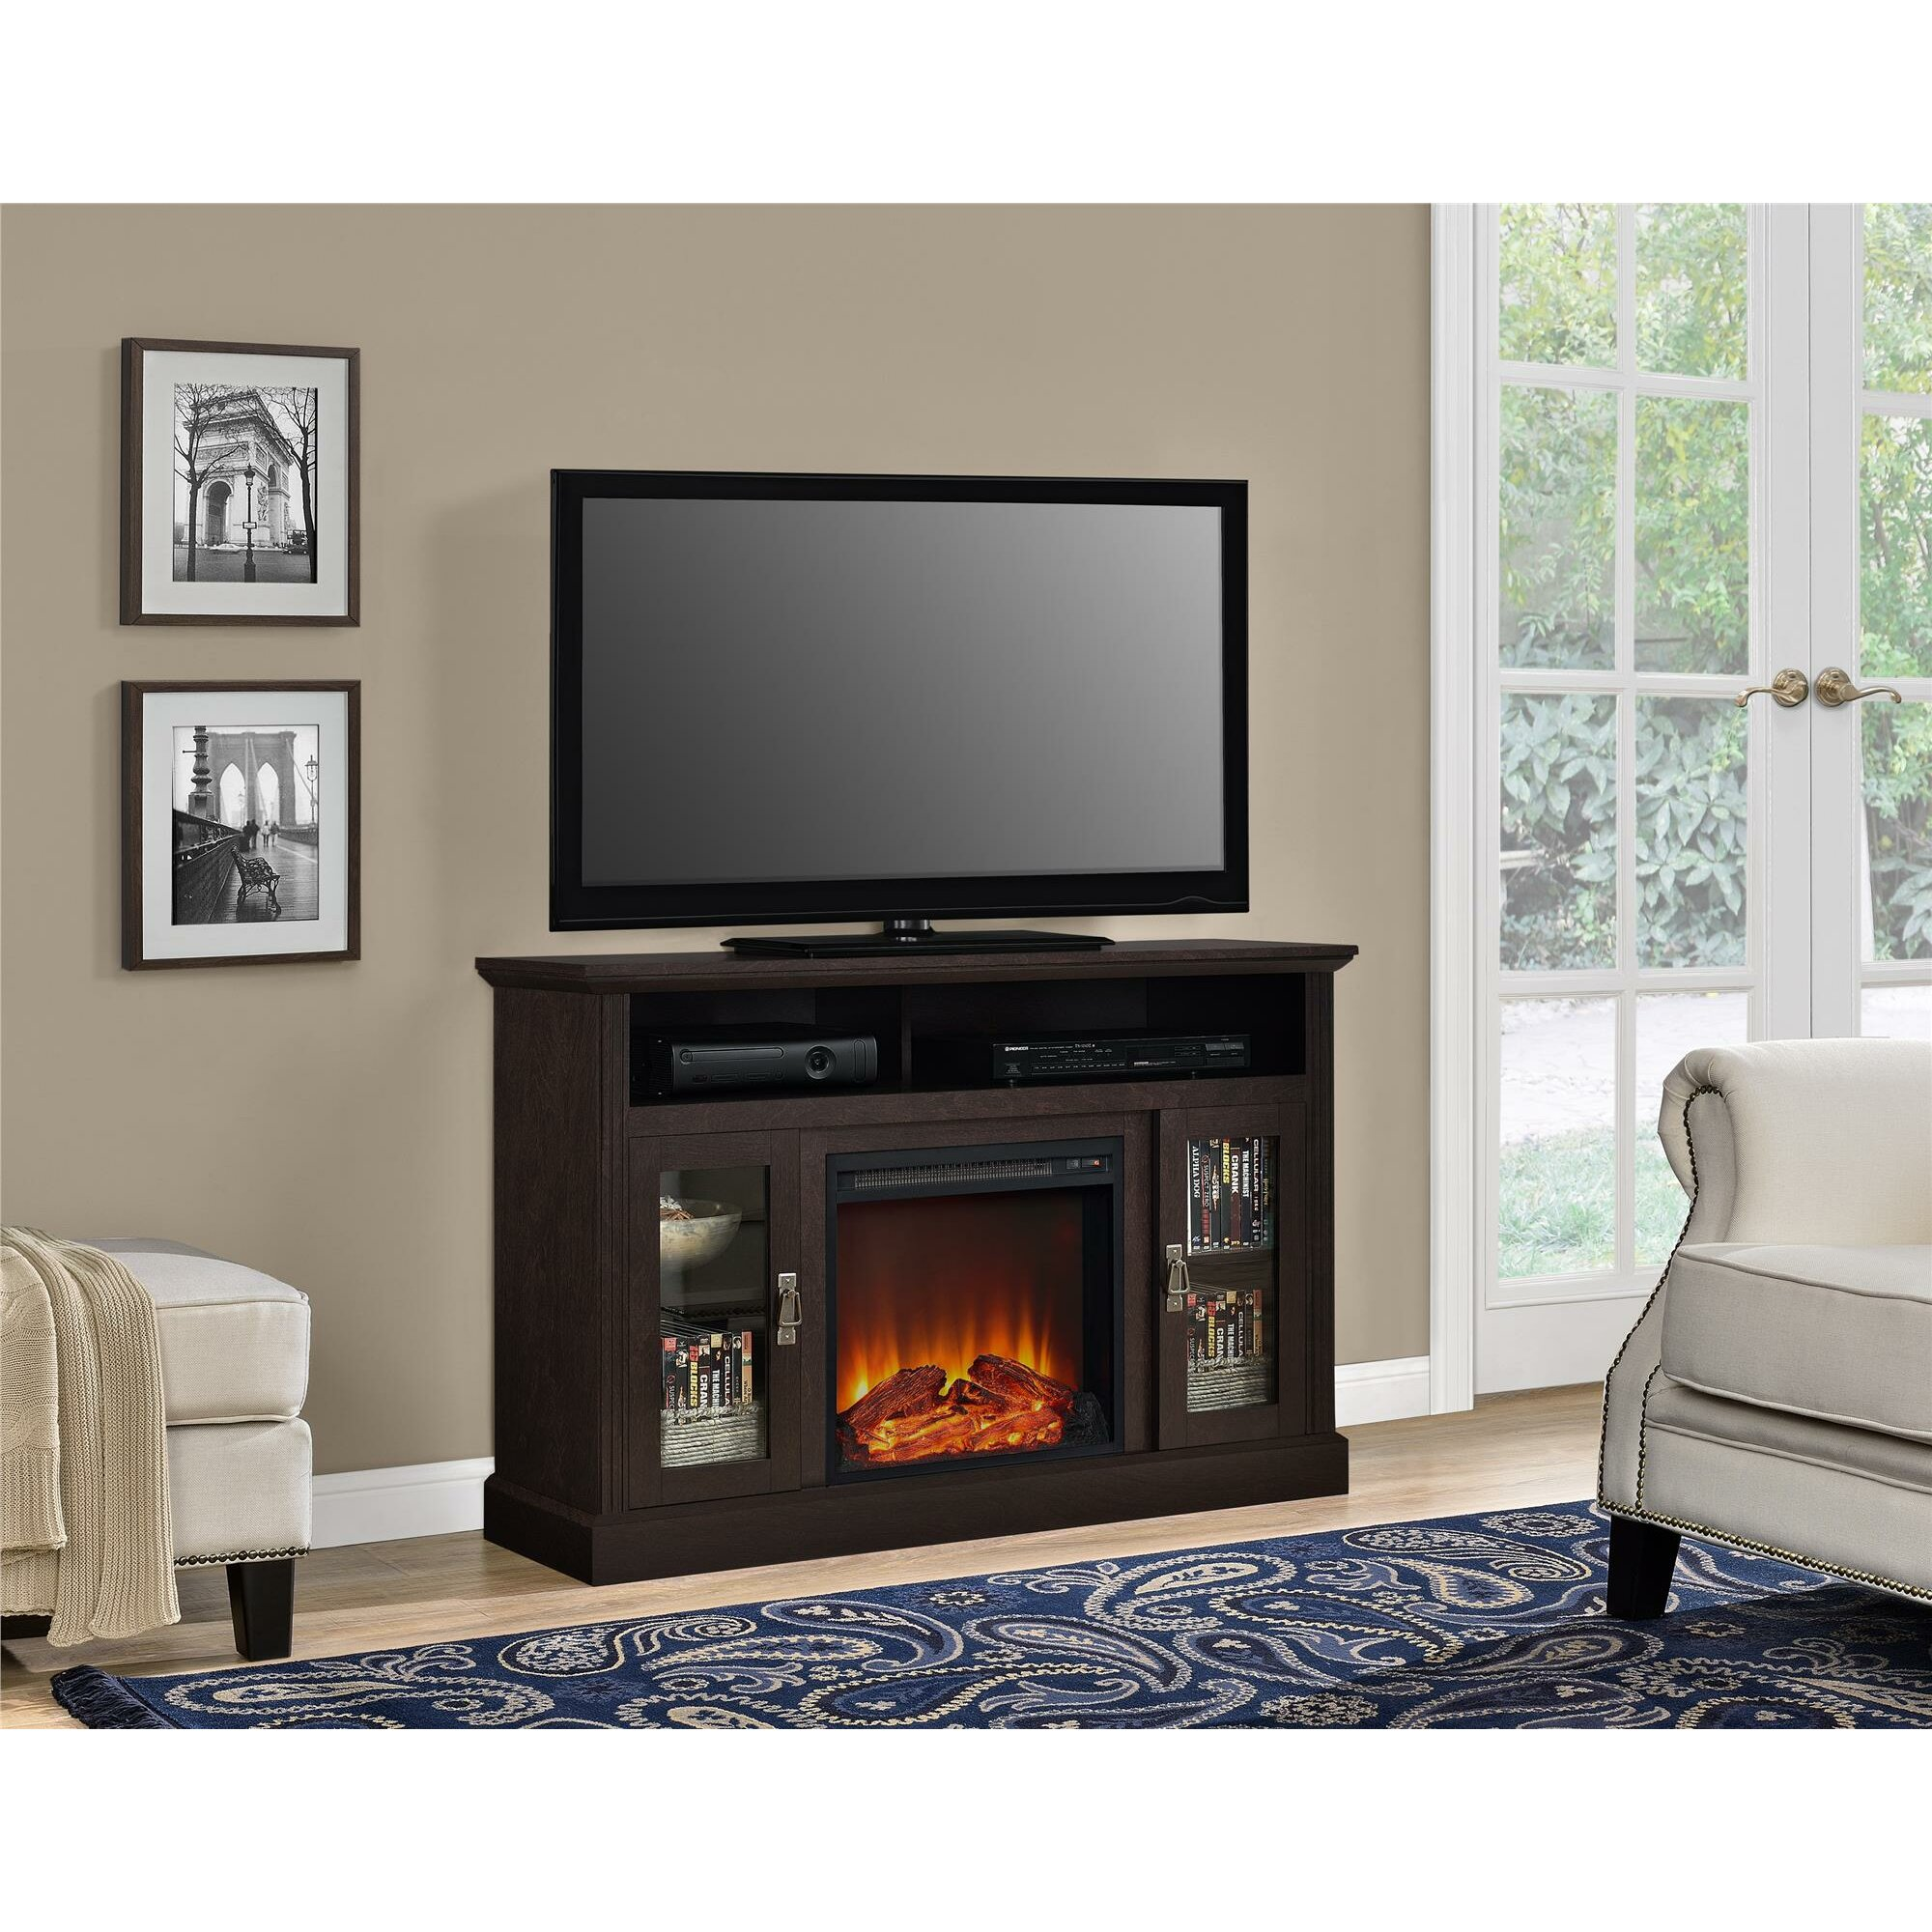 Darby Home Co Cristemas Fireplace Tv Console Reviews Wayfair